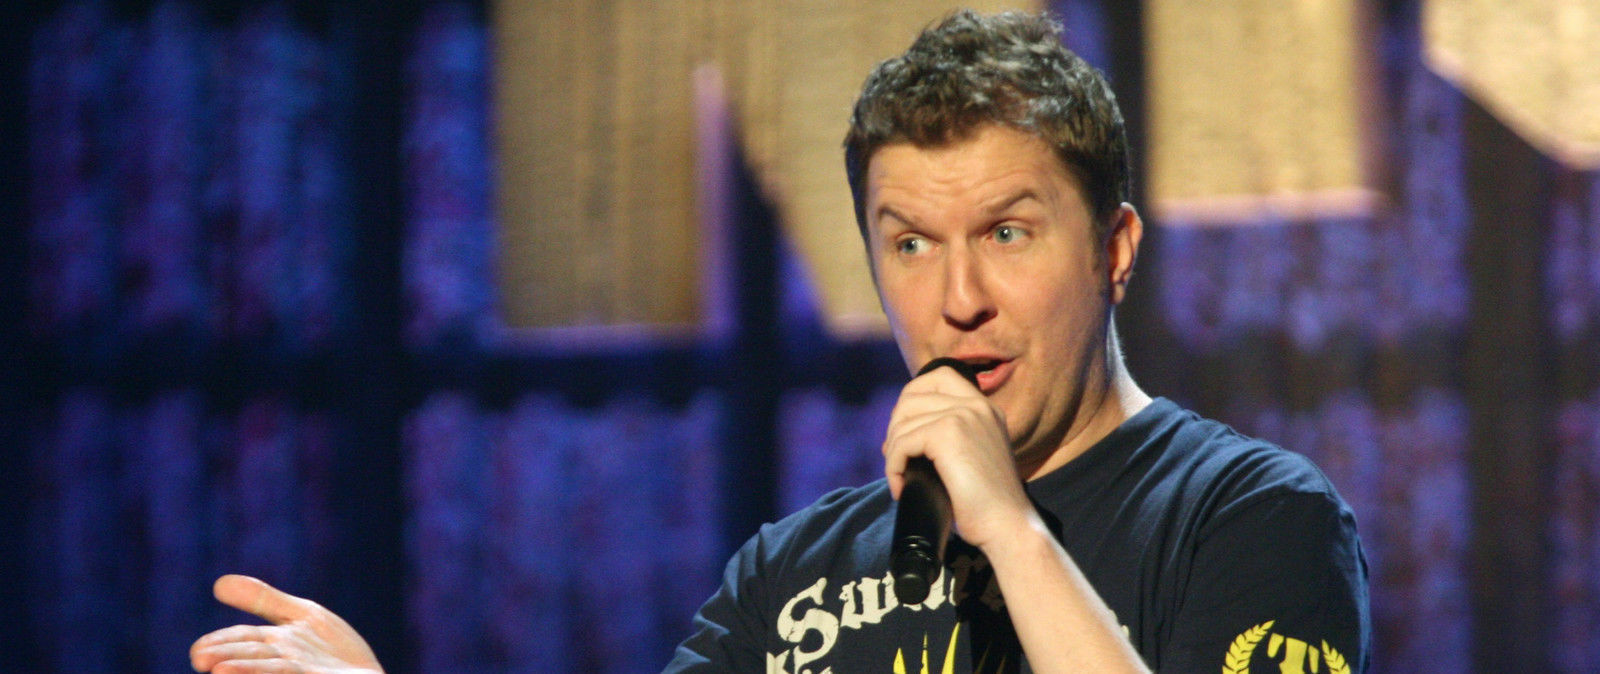 Nick Swardson Tickets (18+ Event)